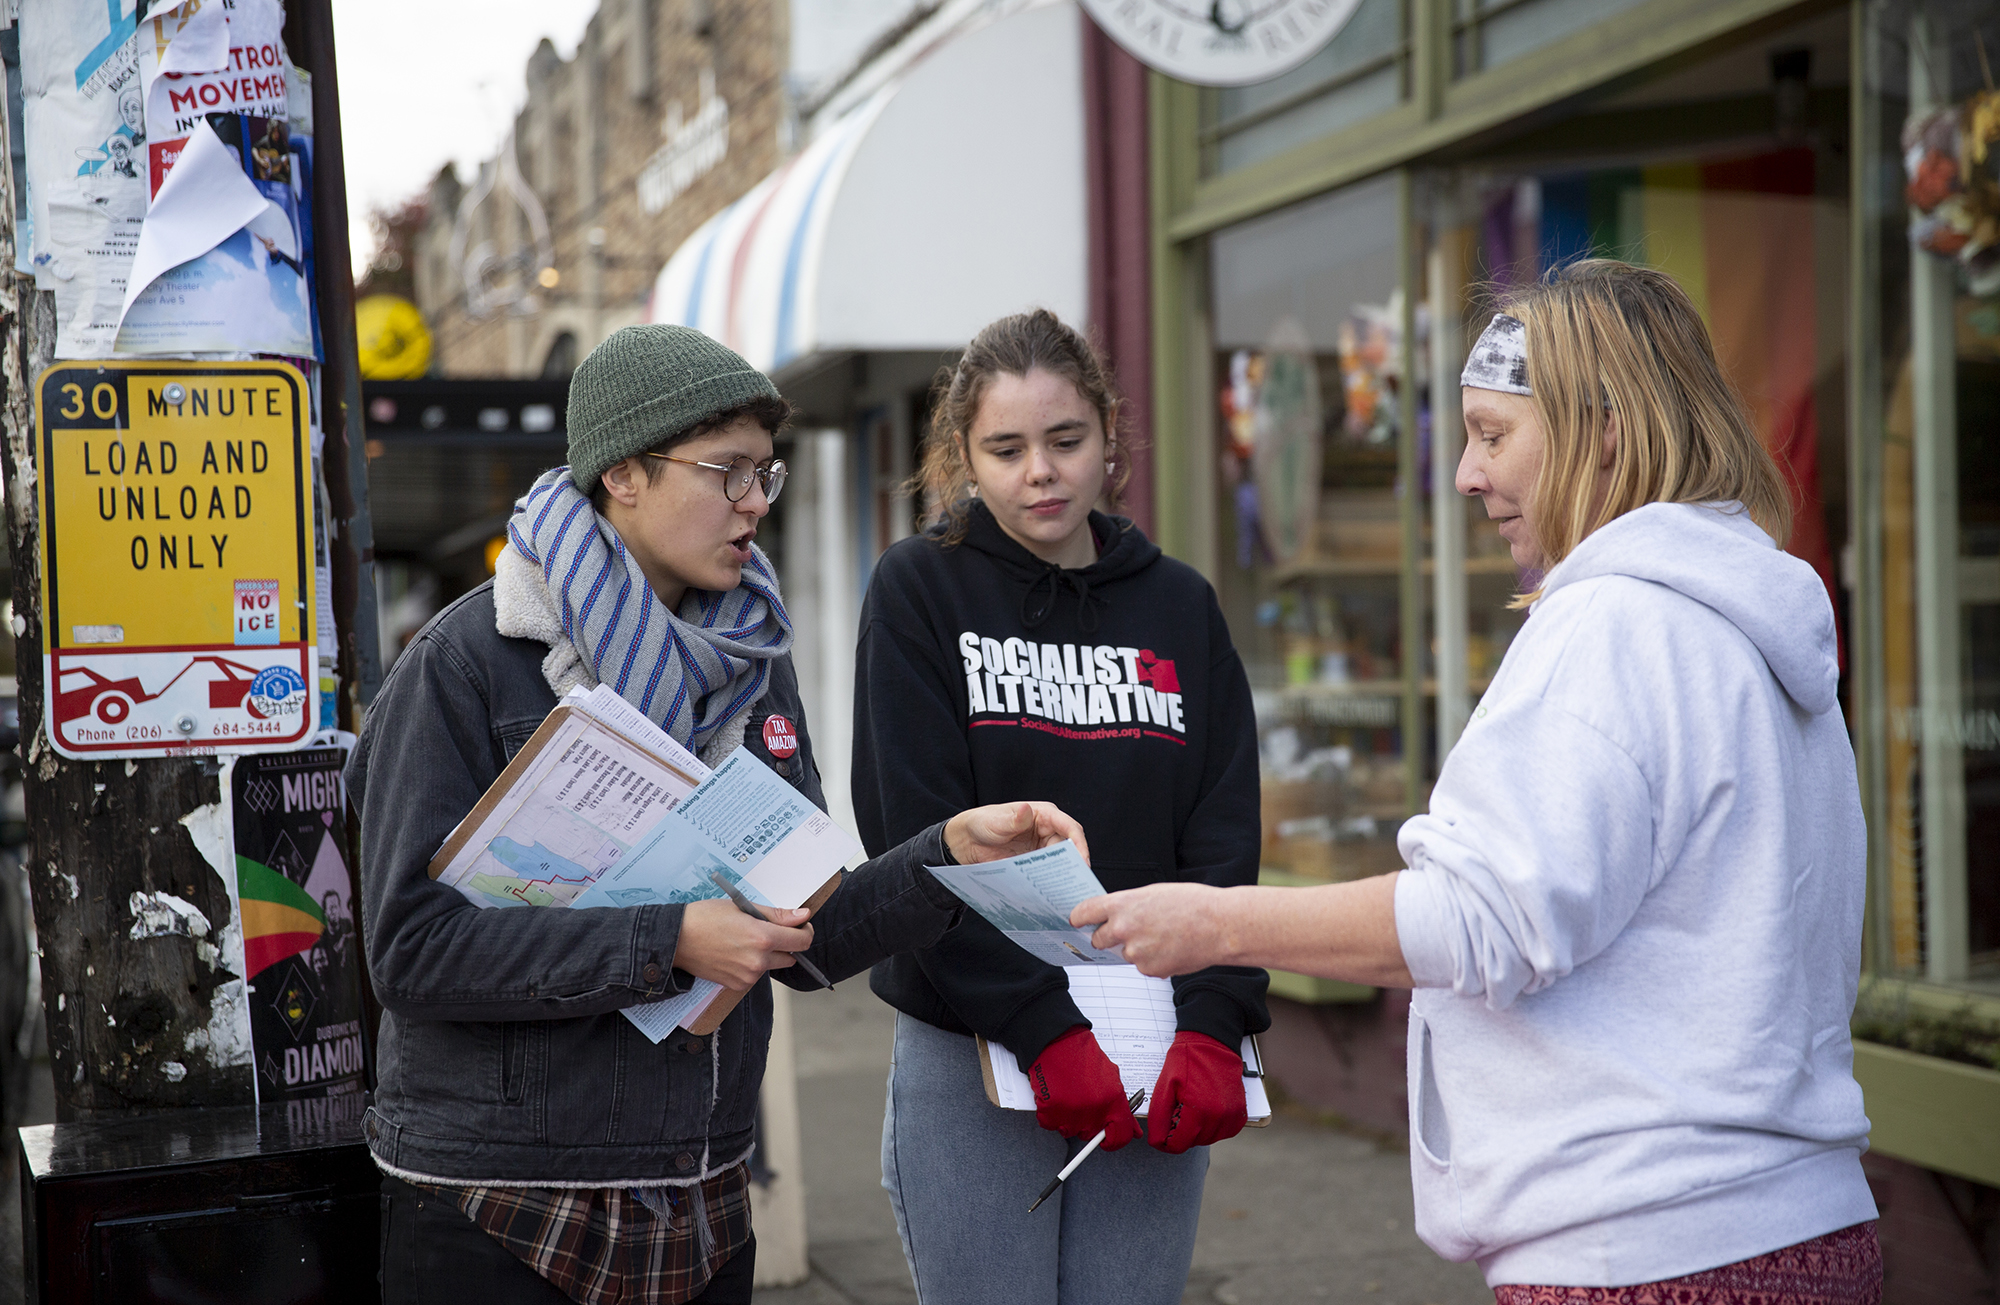 Two volunteers with the Sawant campaign talk to a person on the sidewalk.